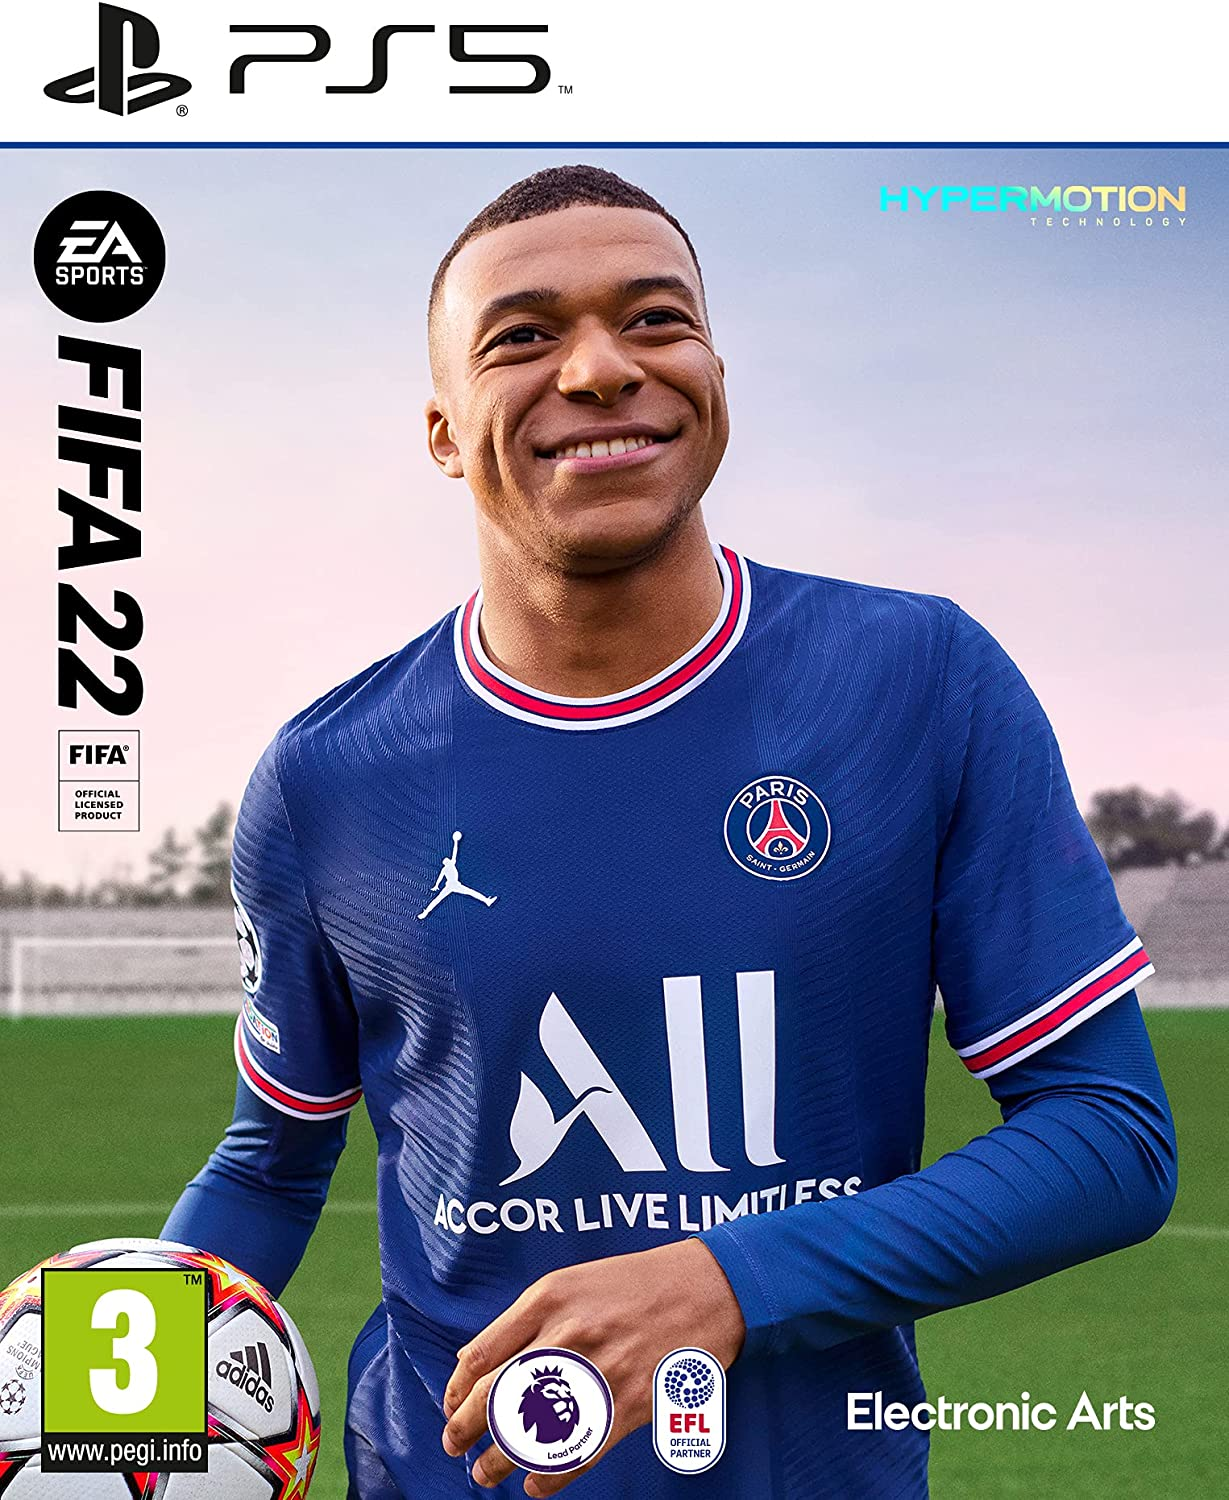 Popular brand in the world FIFA New mail order 22 PS5